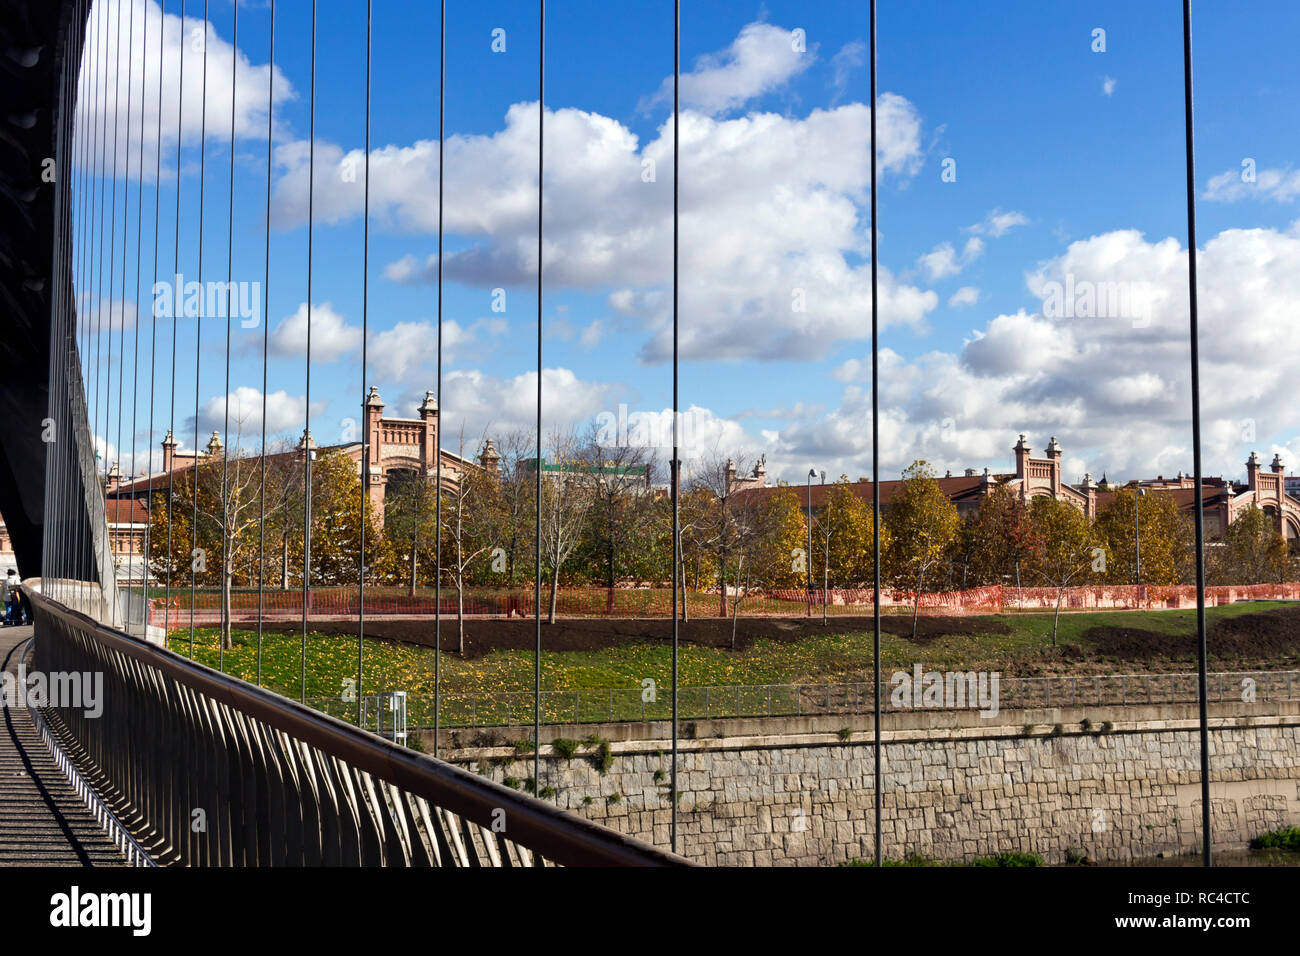 Matadero Madrid, industrial architecture - View from Puente de Matadero, on Manzanares river Stock Photo